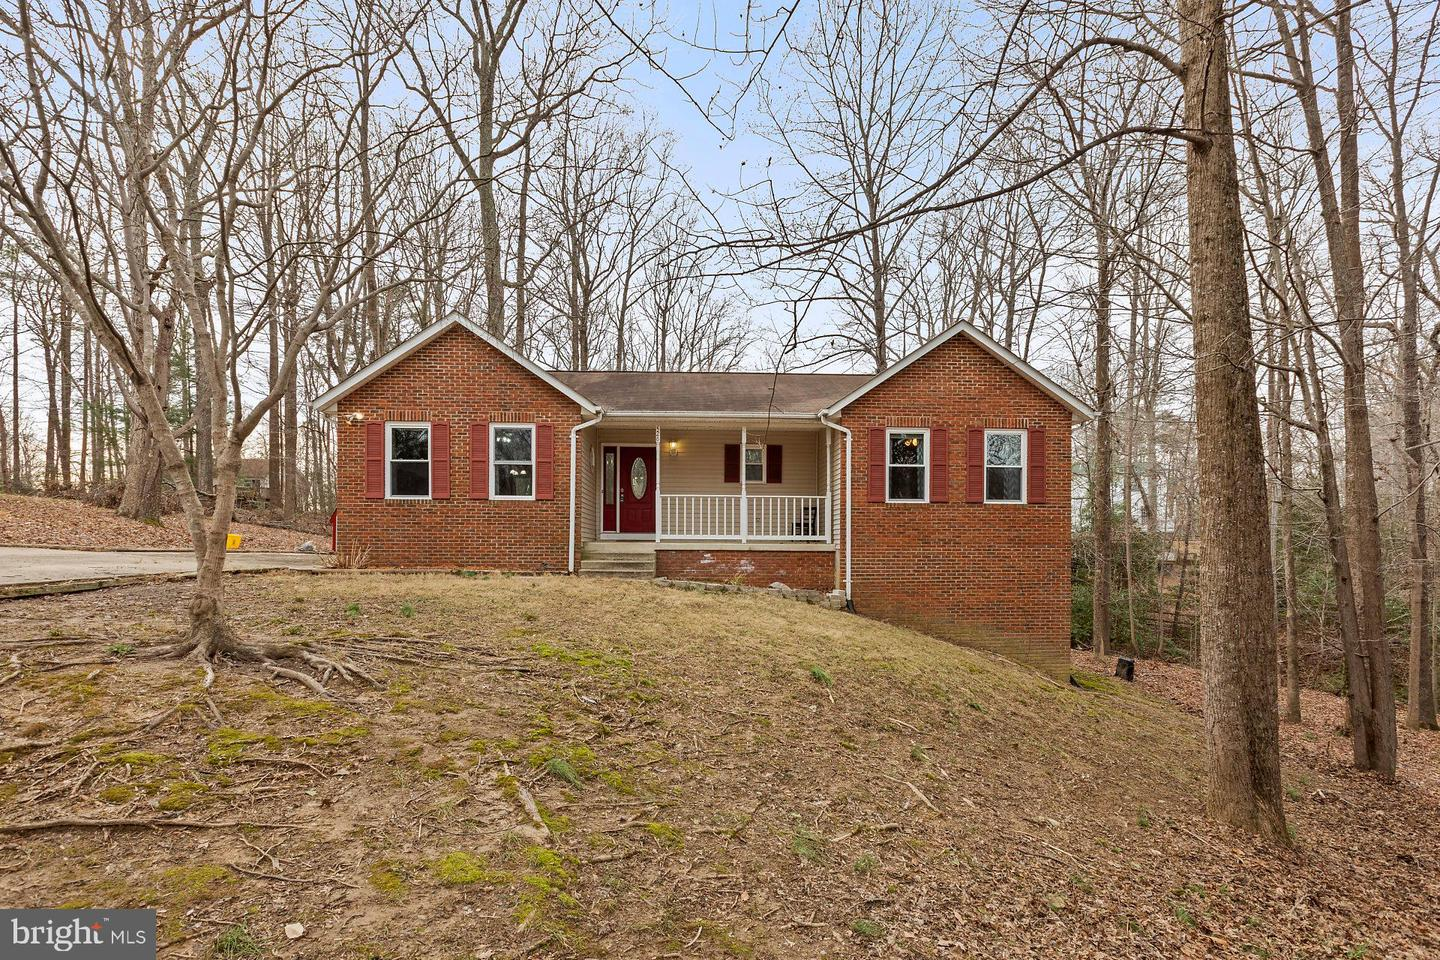 526 Dillon Dr Lusby MD 20657